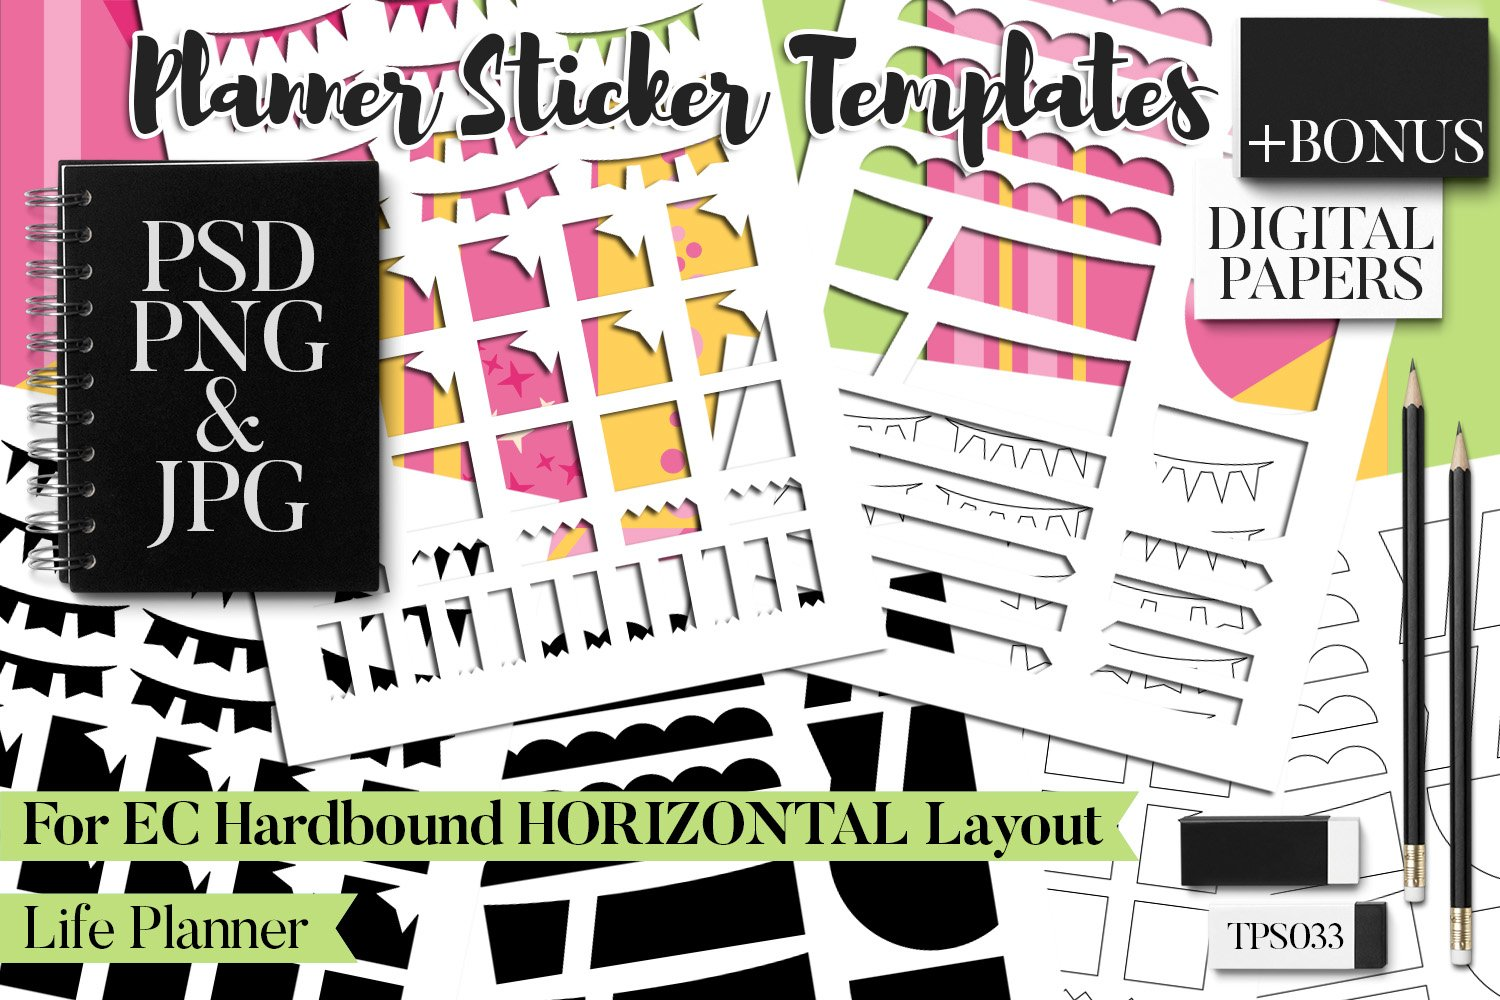 Planner Stickers Templates - Bundle Vol. 11 example image 13